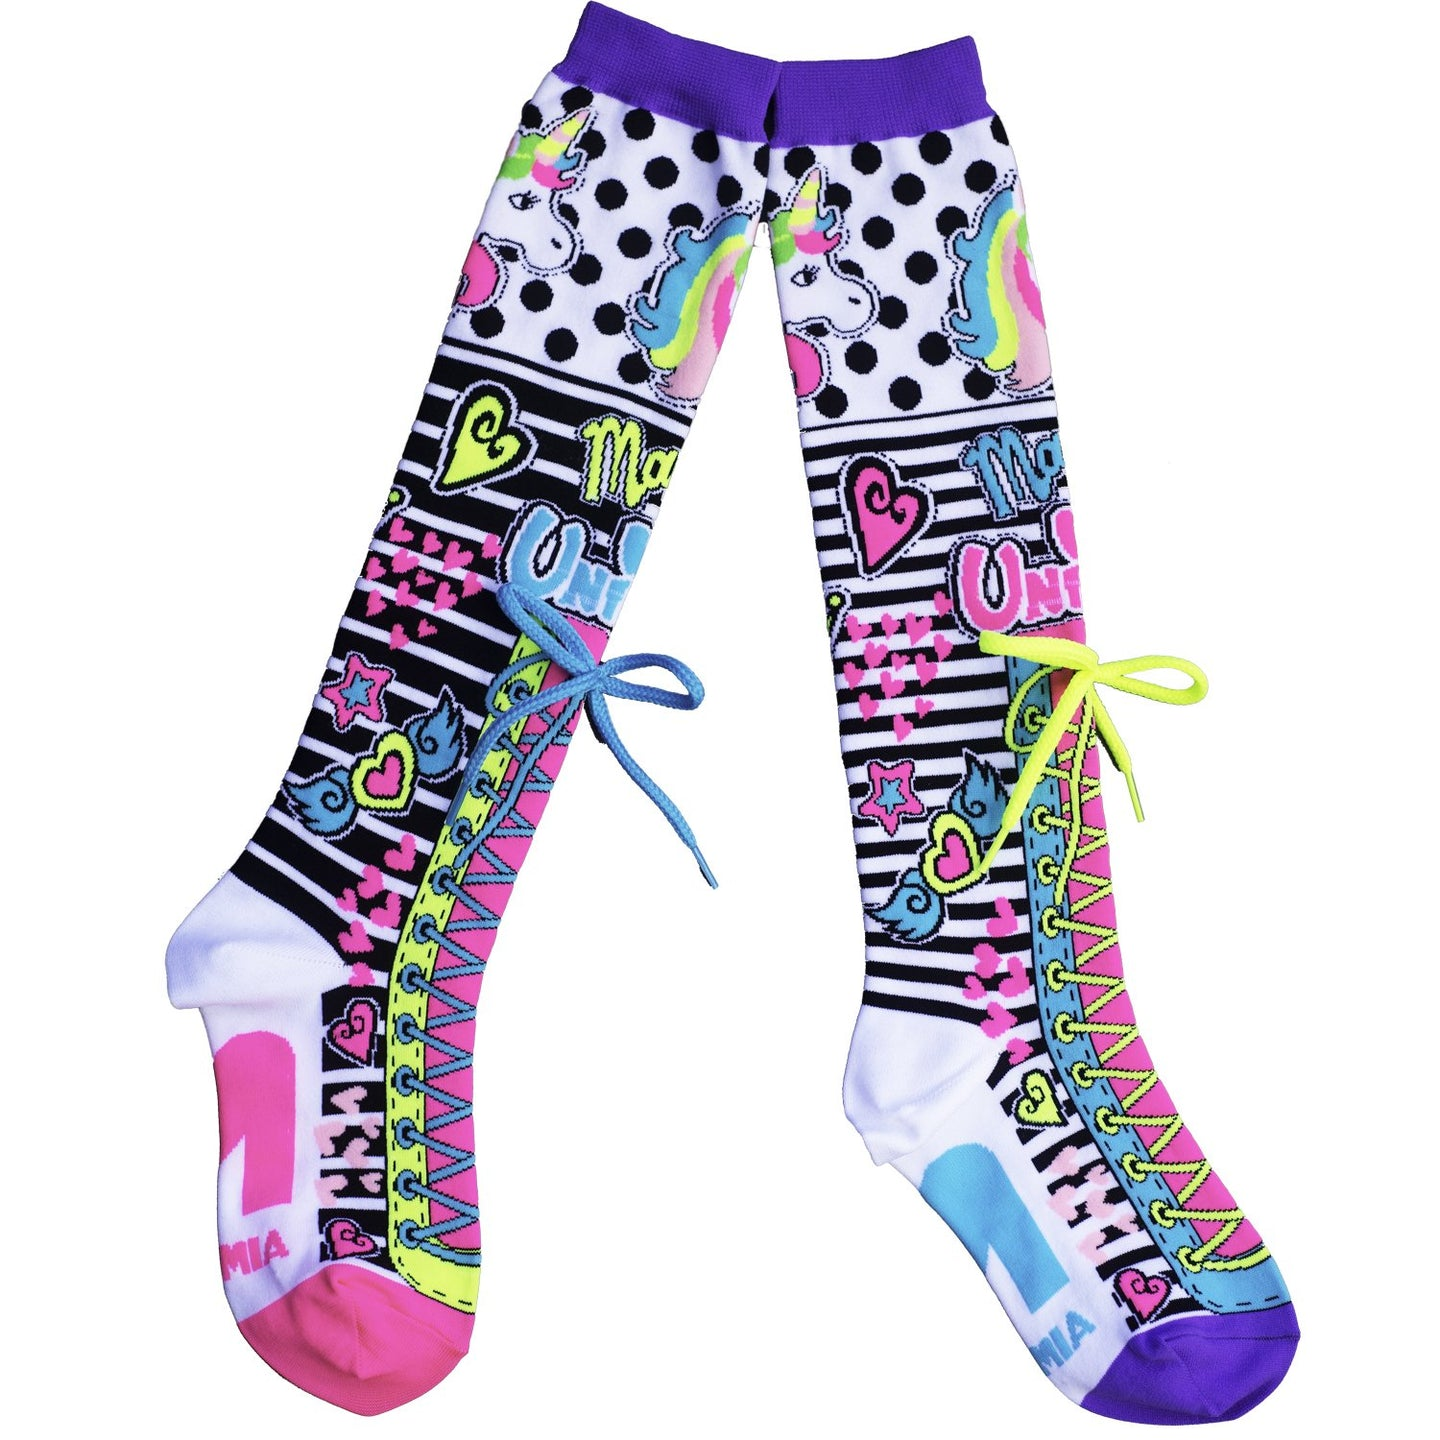 UNICORN MAGIC MadMia Socks